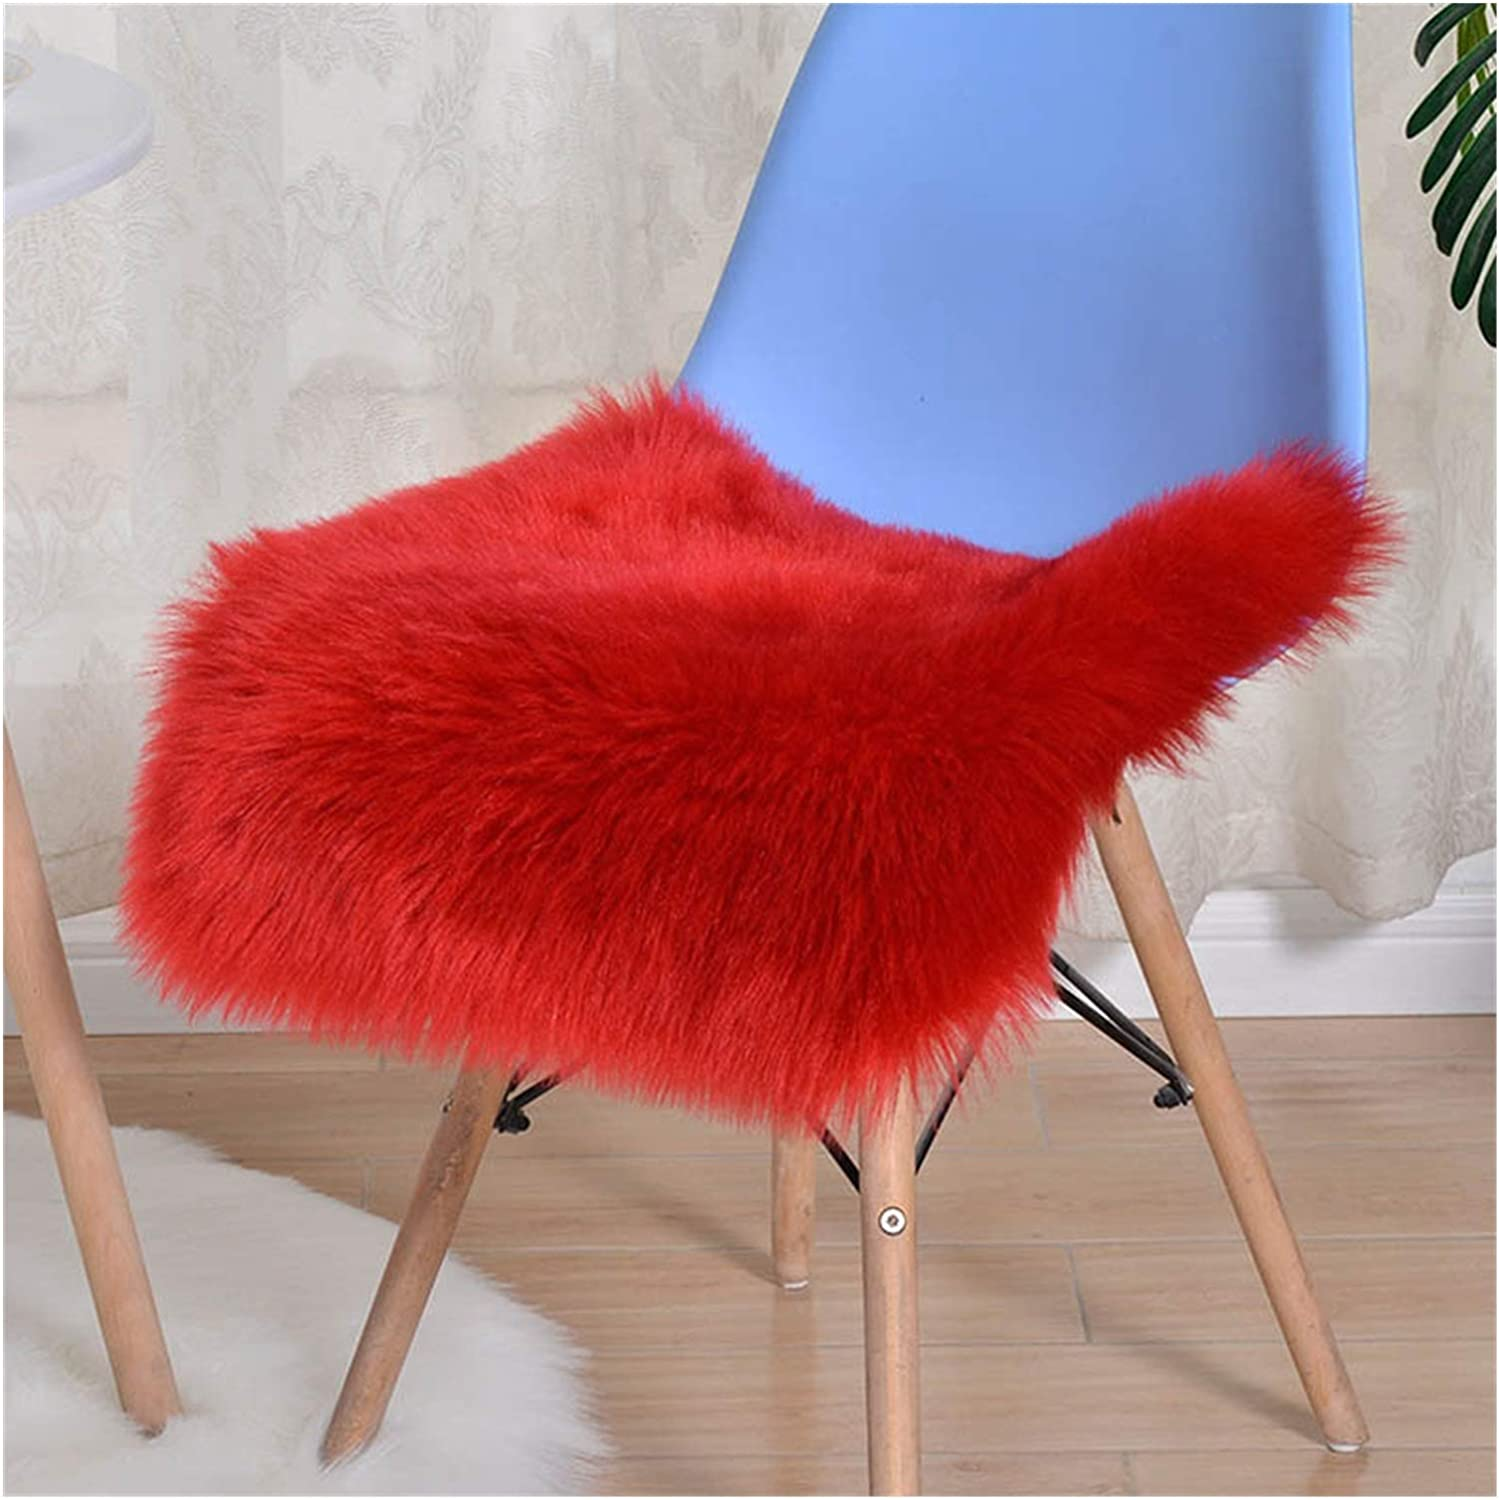 ZCPCS Candy price Color Max 54% OFF Cushion for Sofa Seat C Red Chair Office Couch